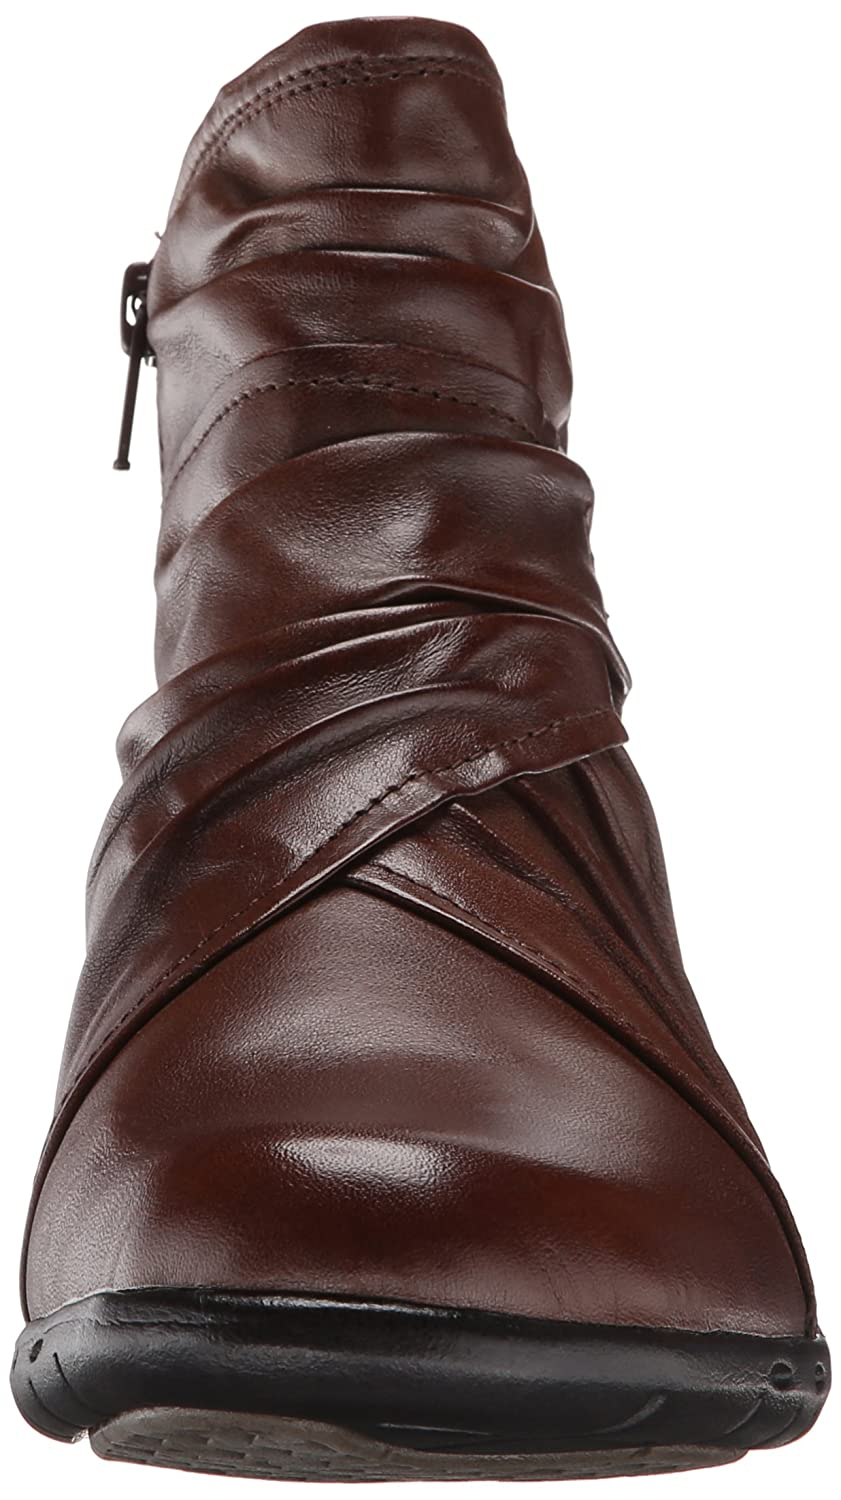 Amazon.com | Rockport Cobb Hill Women's Pandora Boot, Chocolate, 9 M US |  Ankle & Bootie